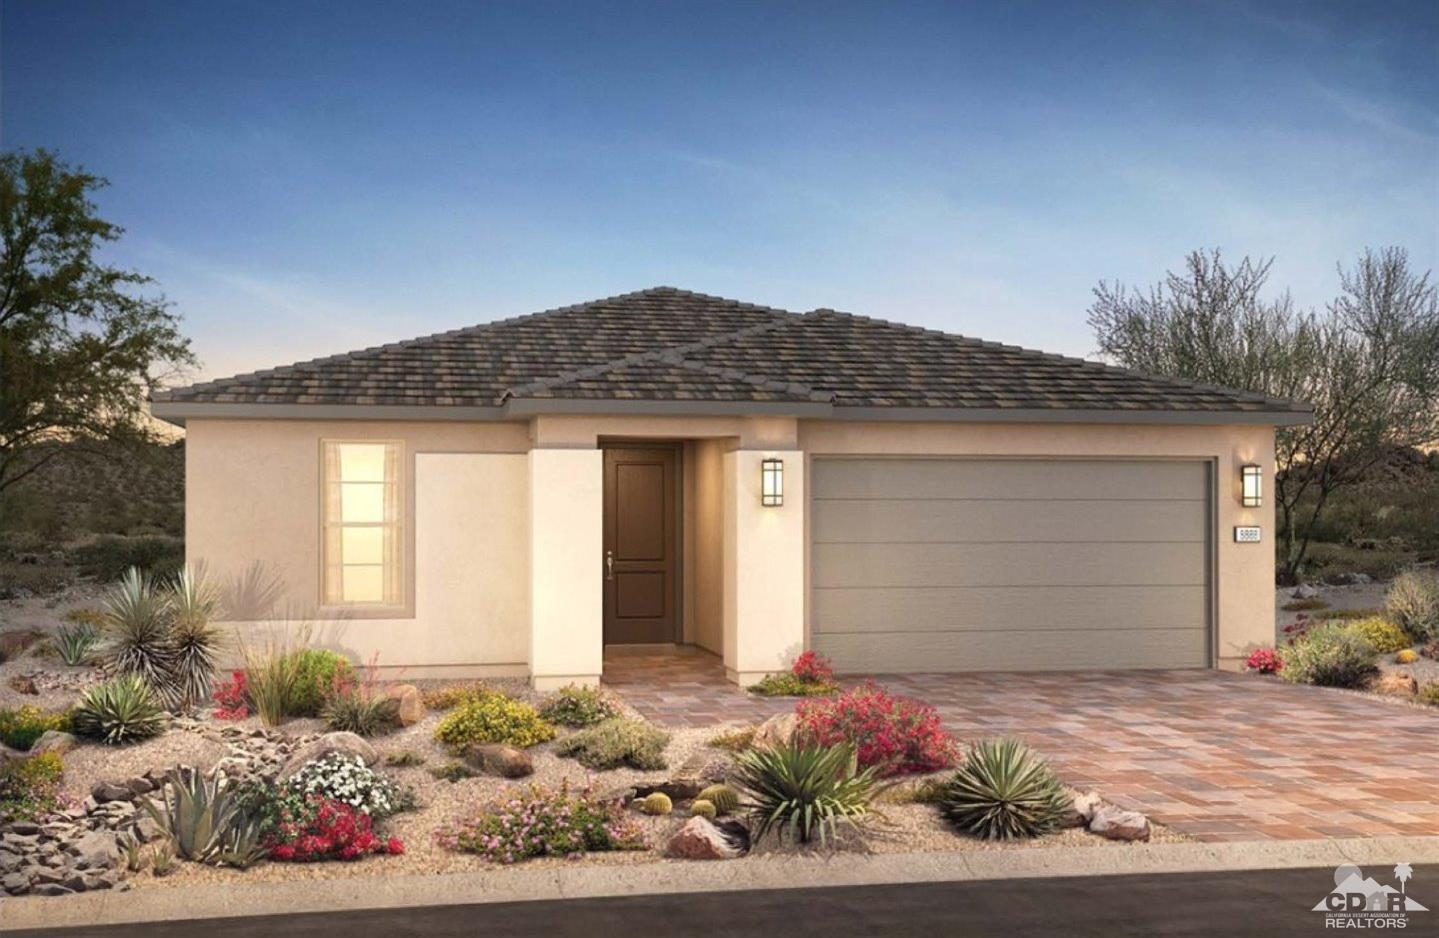 Photo of 50770 Harps Canyon (Lot 5043) Drive, Indio, CA 92201